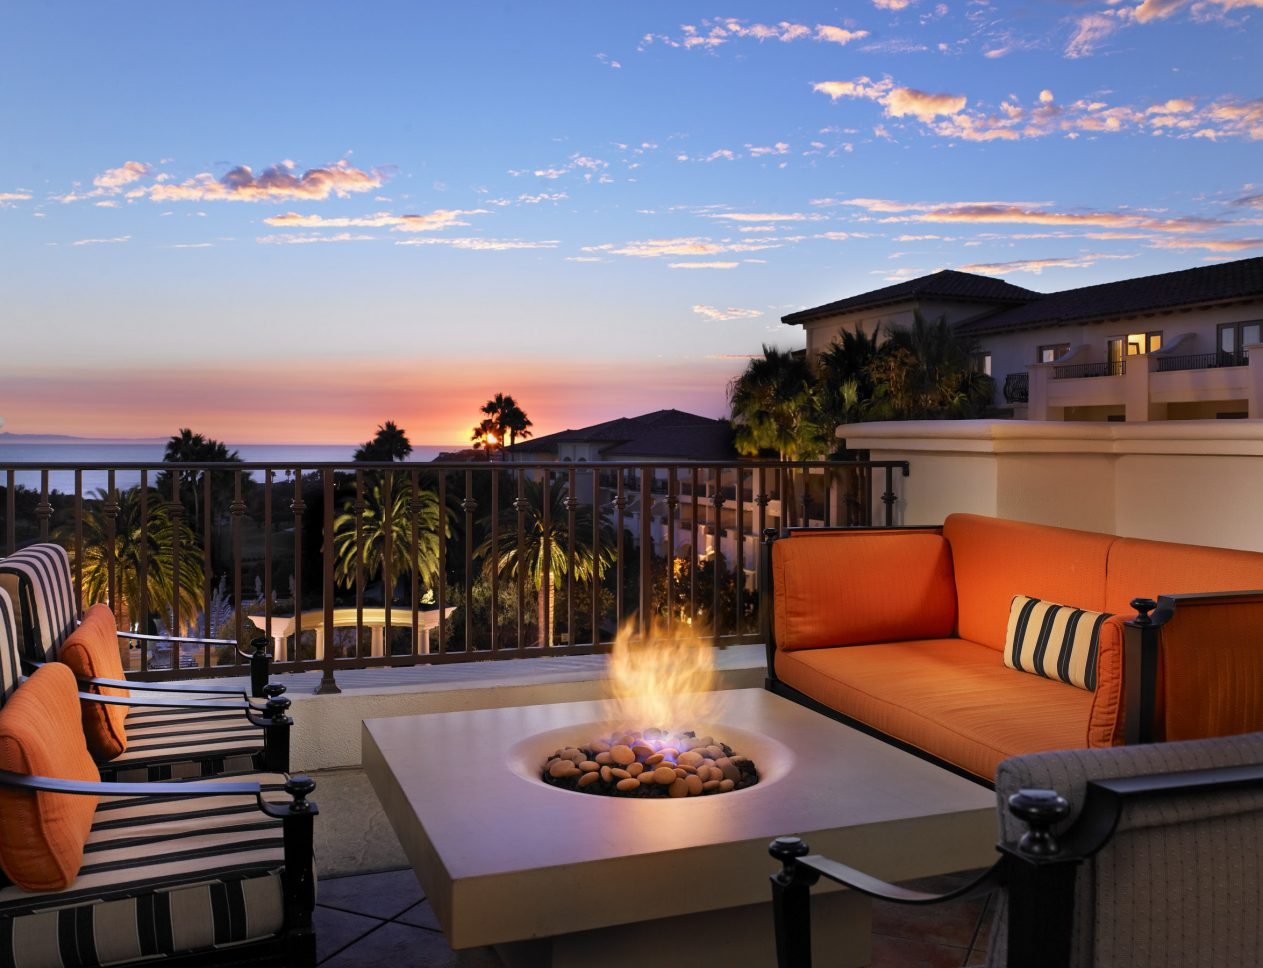 Solus firepit shown lit outside at monarch beach california